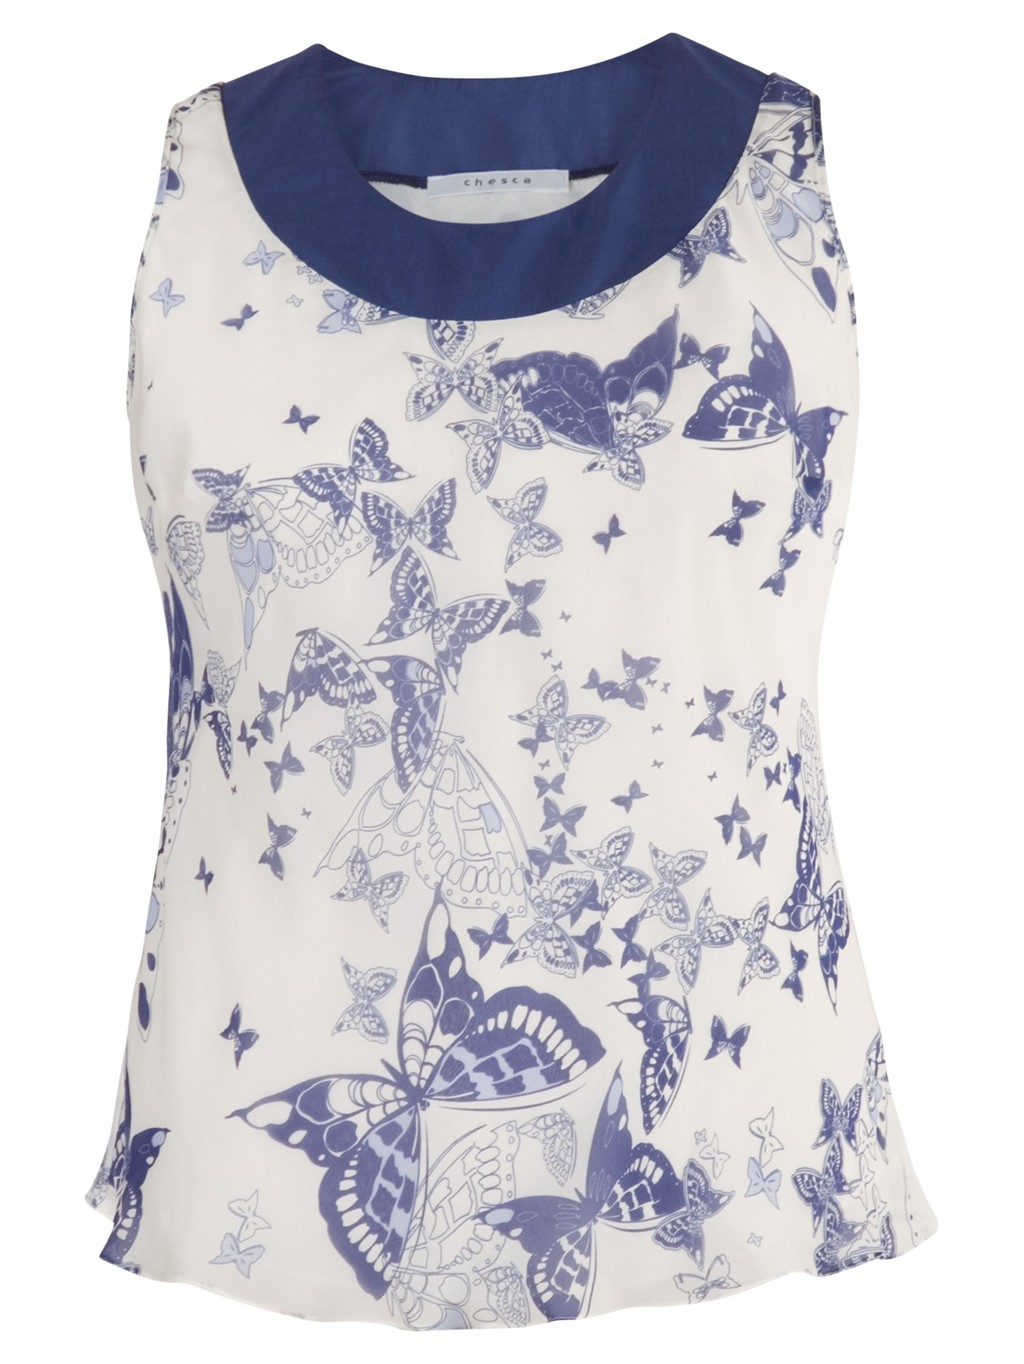 Butterfly Print Silk Camisole, Ivory/Blue - neckline: round neck; sleeve style: sleeveless; predominant colour: white; secondary colour: royal blue; length: standard; style: top; fibres: silk - 100%; occasions: occasion; fit: body skimming; sleeve length: sleeveless; texture group: silky - light; pattern type: fabric; pattern: patterned/print; season: s/s 2014; multicoloured: multicoloured